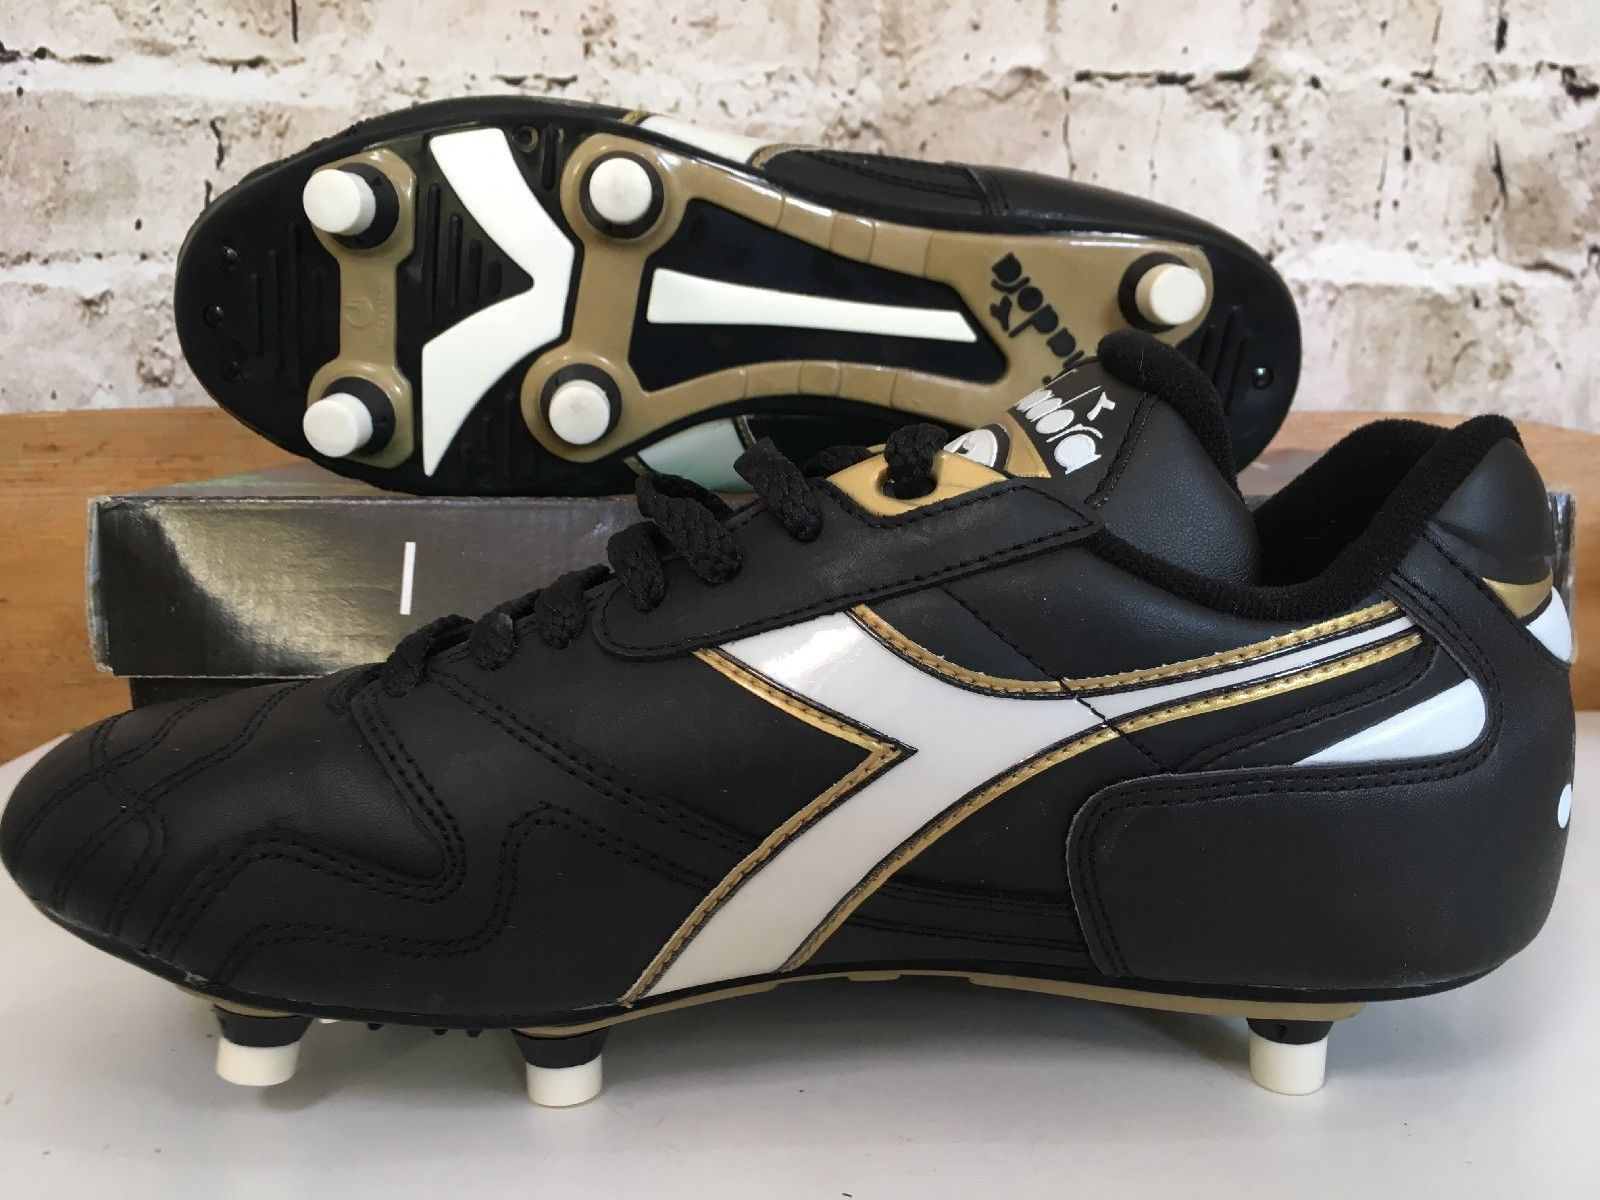 Vintage 1990s Diadora Squadra Sc Uk 8 Us 9 Eu 42 Football Boots Black Leather Og Ebay Football Boots Black Leather Boots Boots